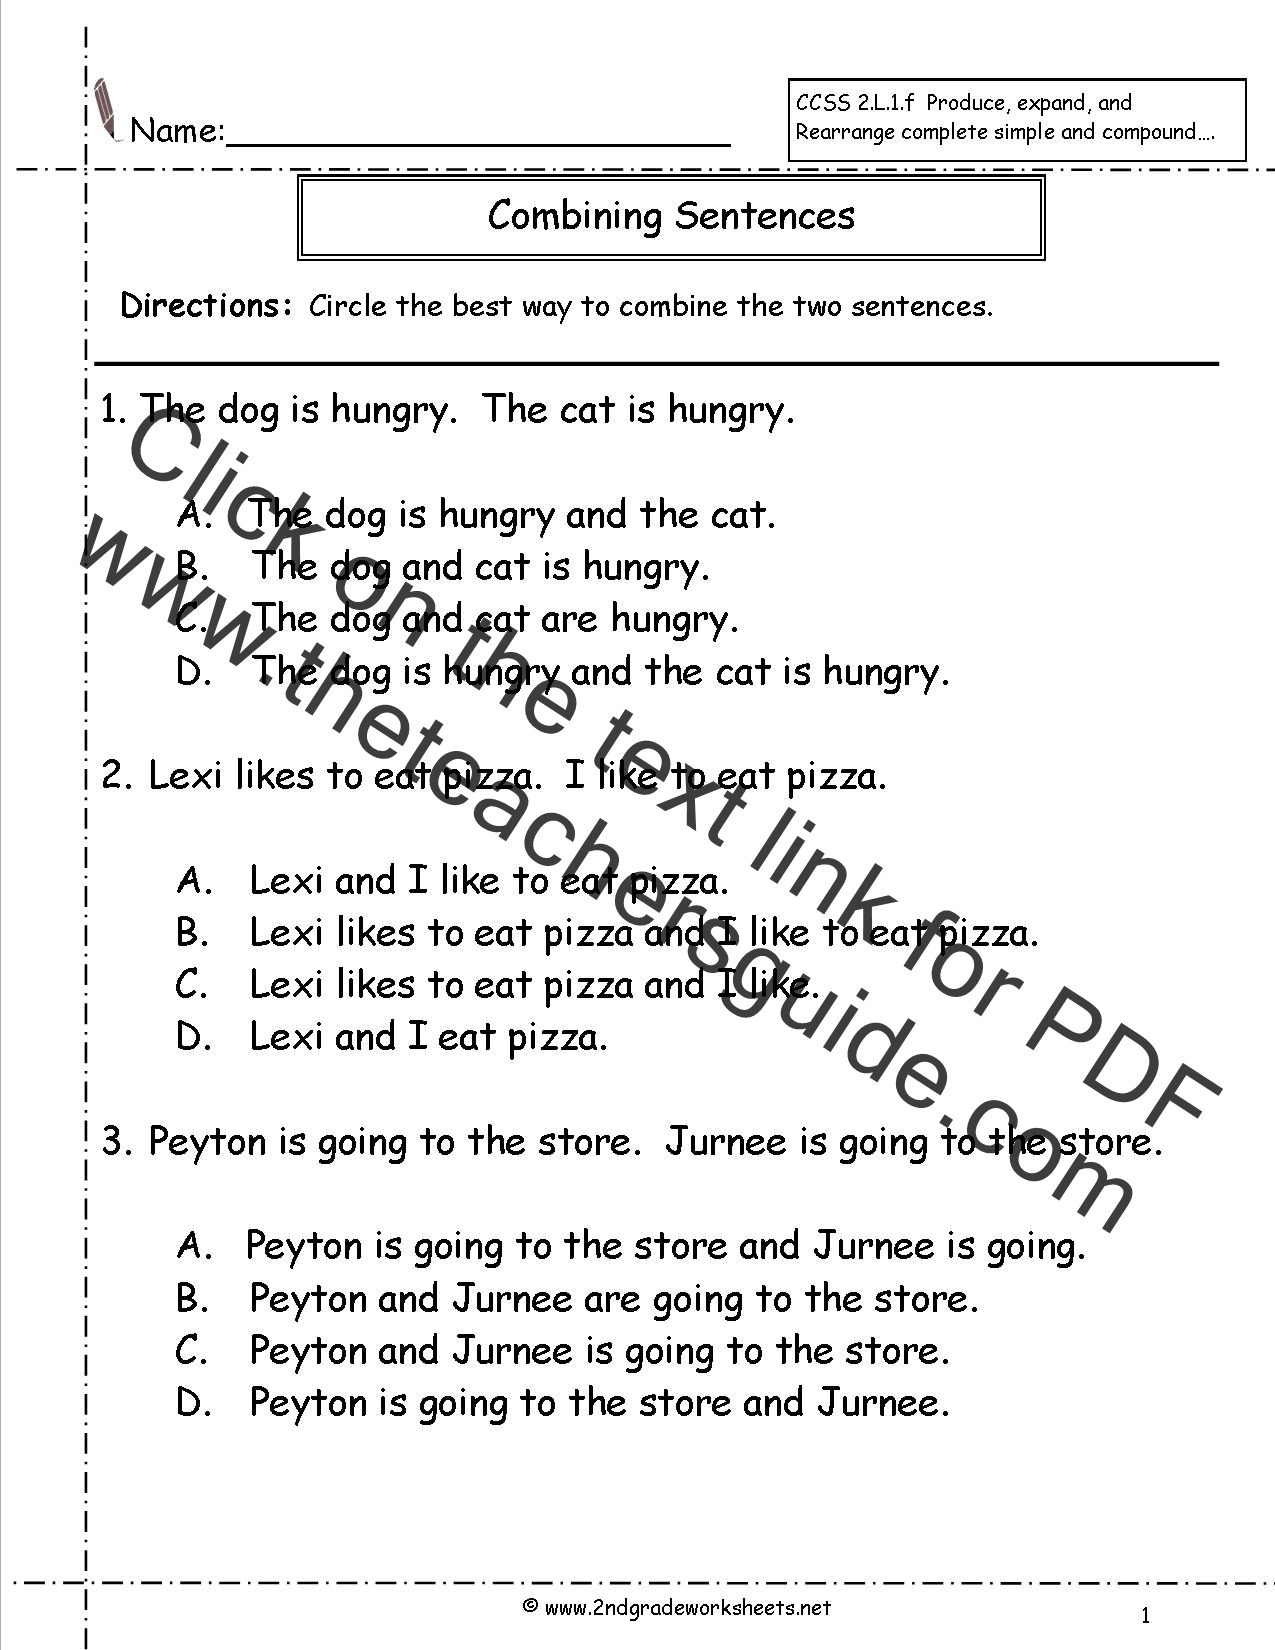 Worksheets Simple And Compound Sentences Worksheet second grade sentences worksheets ccss 2 l 1 f combining worksheet